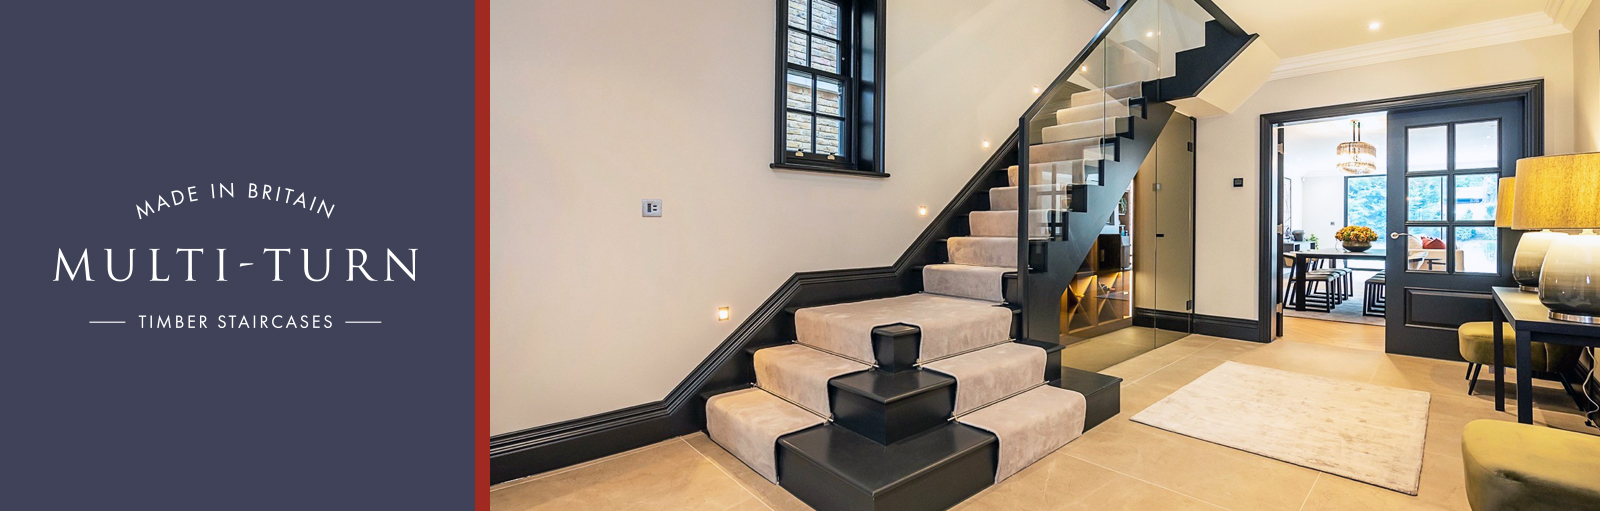 multi-turn-timber-staircase-banner